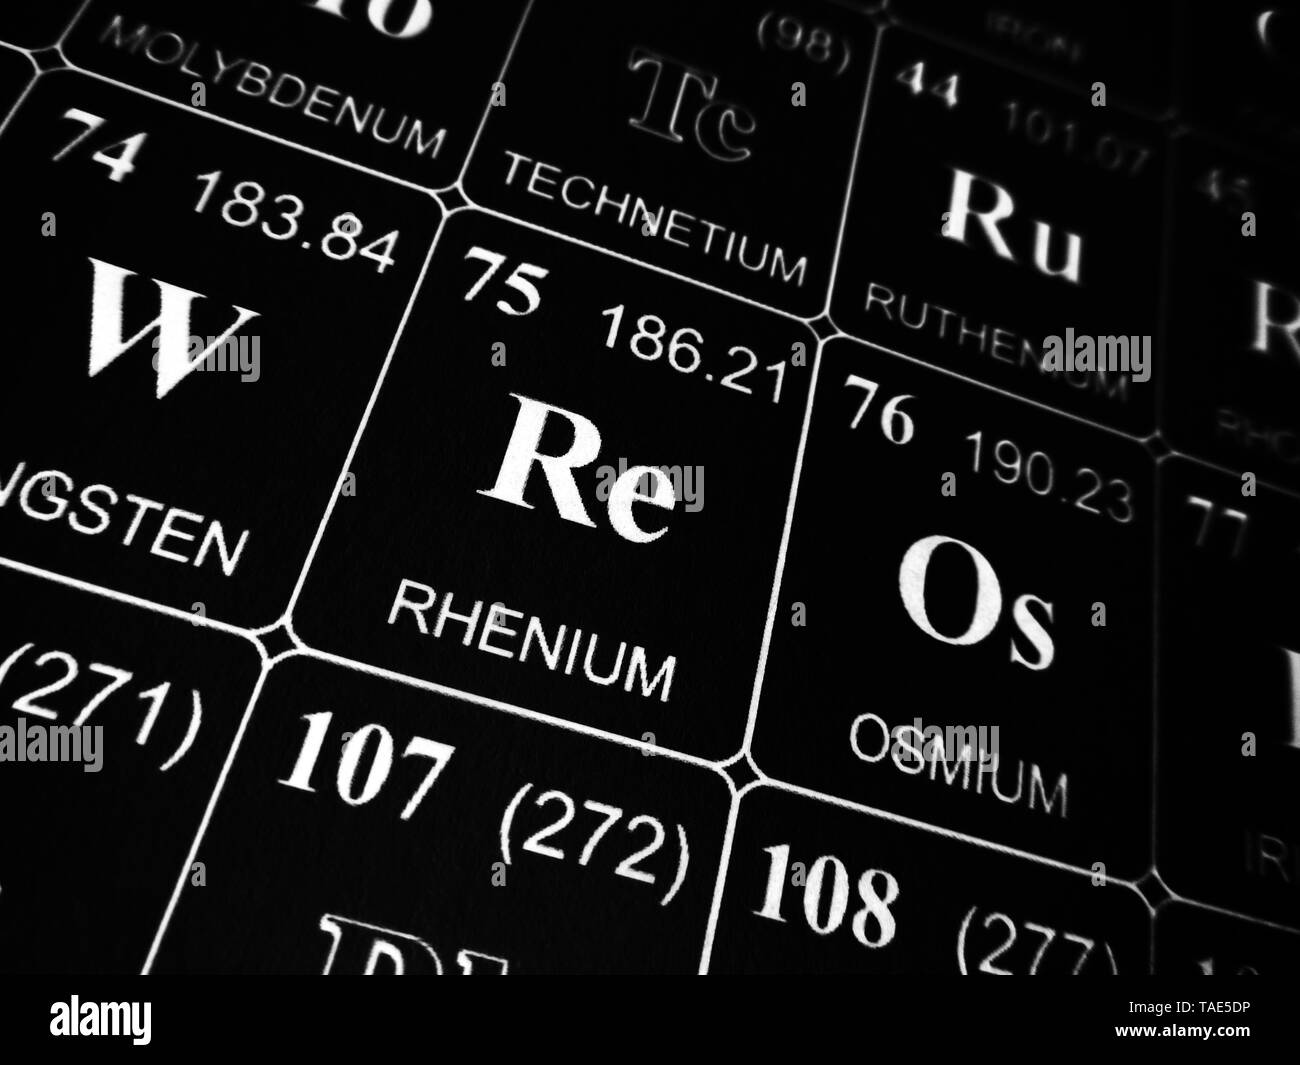 hight resolution of rhenium on the periodic table of the elements stock image